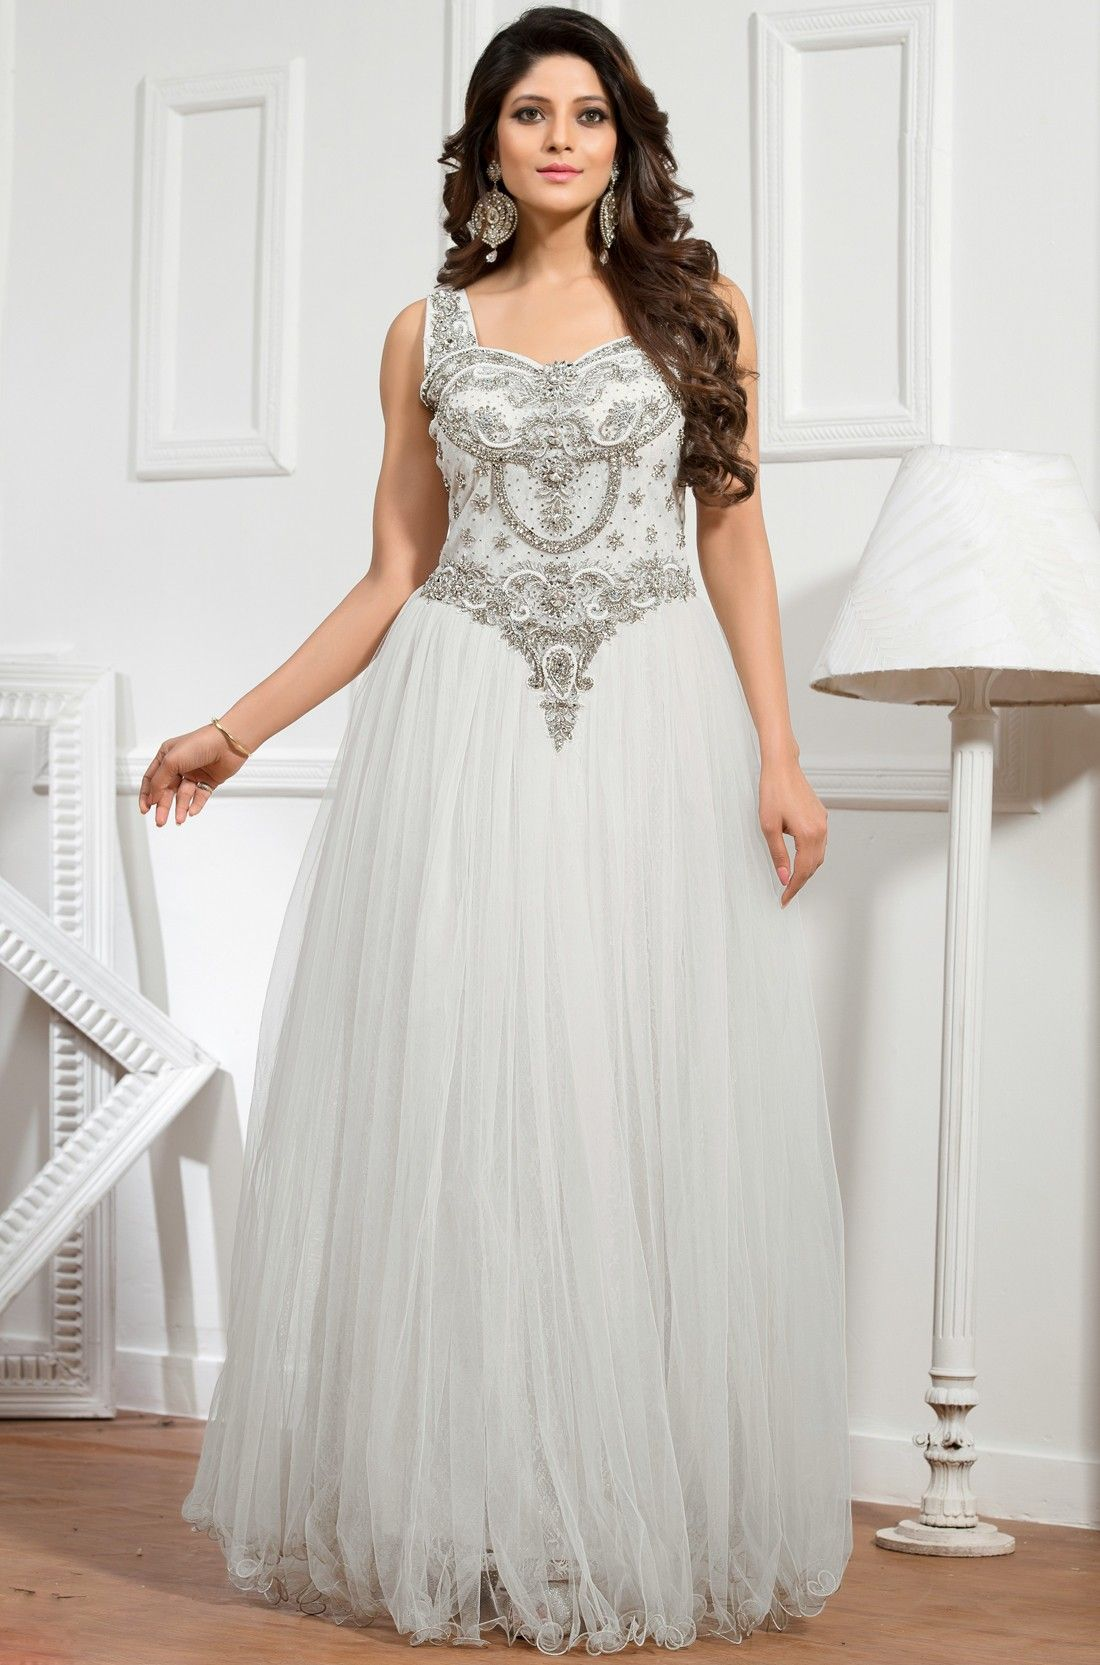 Off White Net Readymade Gown - #Indian-Gowns #Indian-Designer-Gowns ...